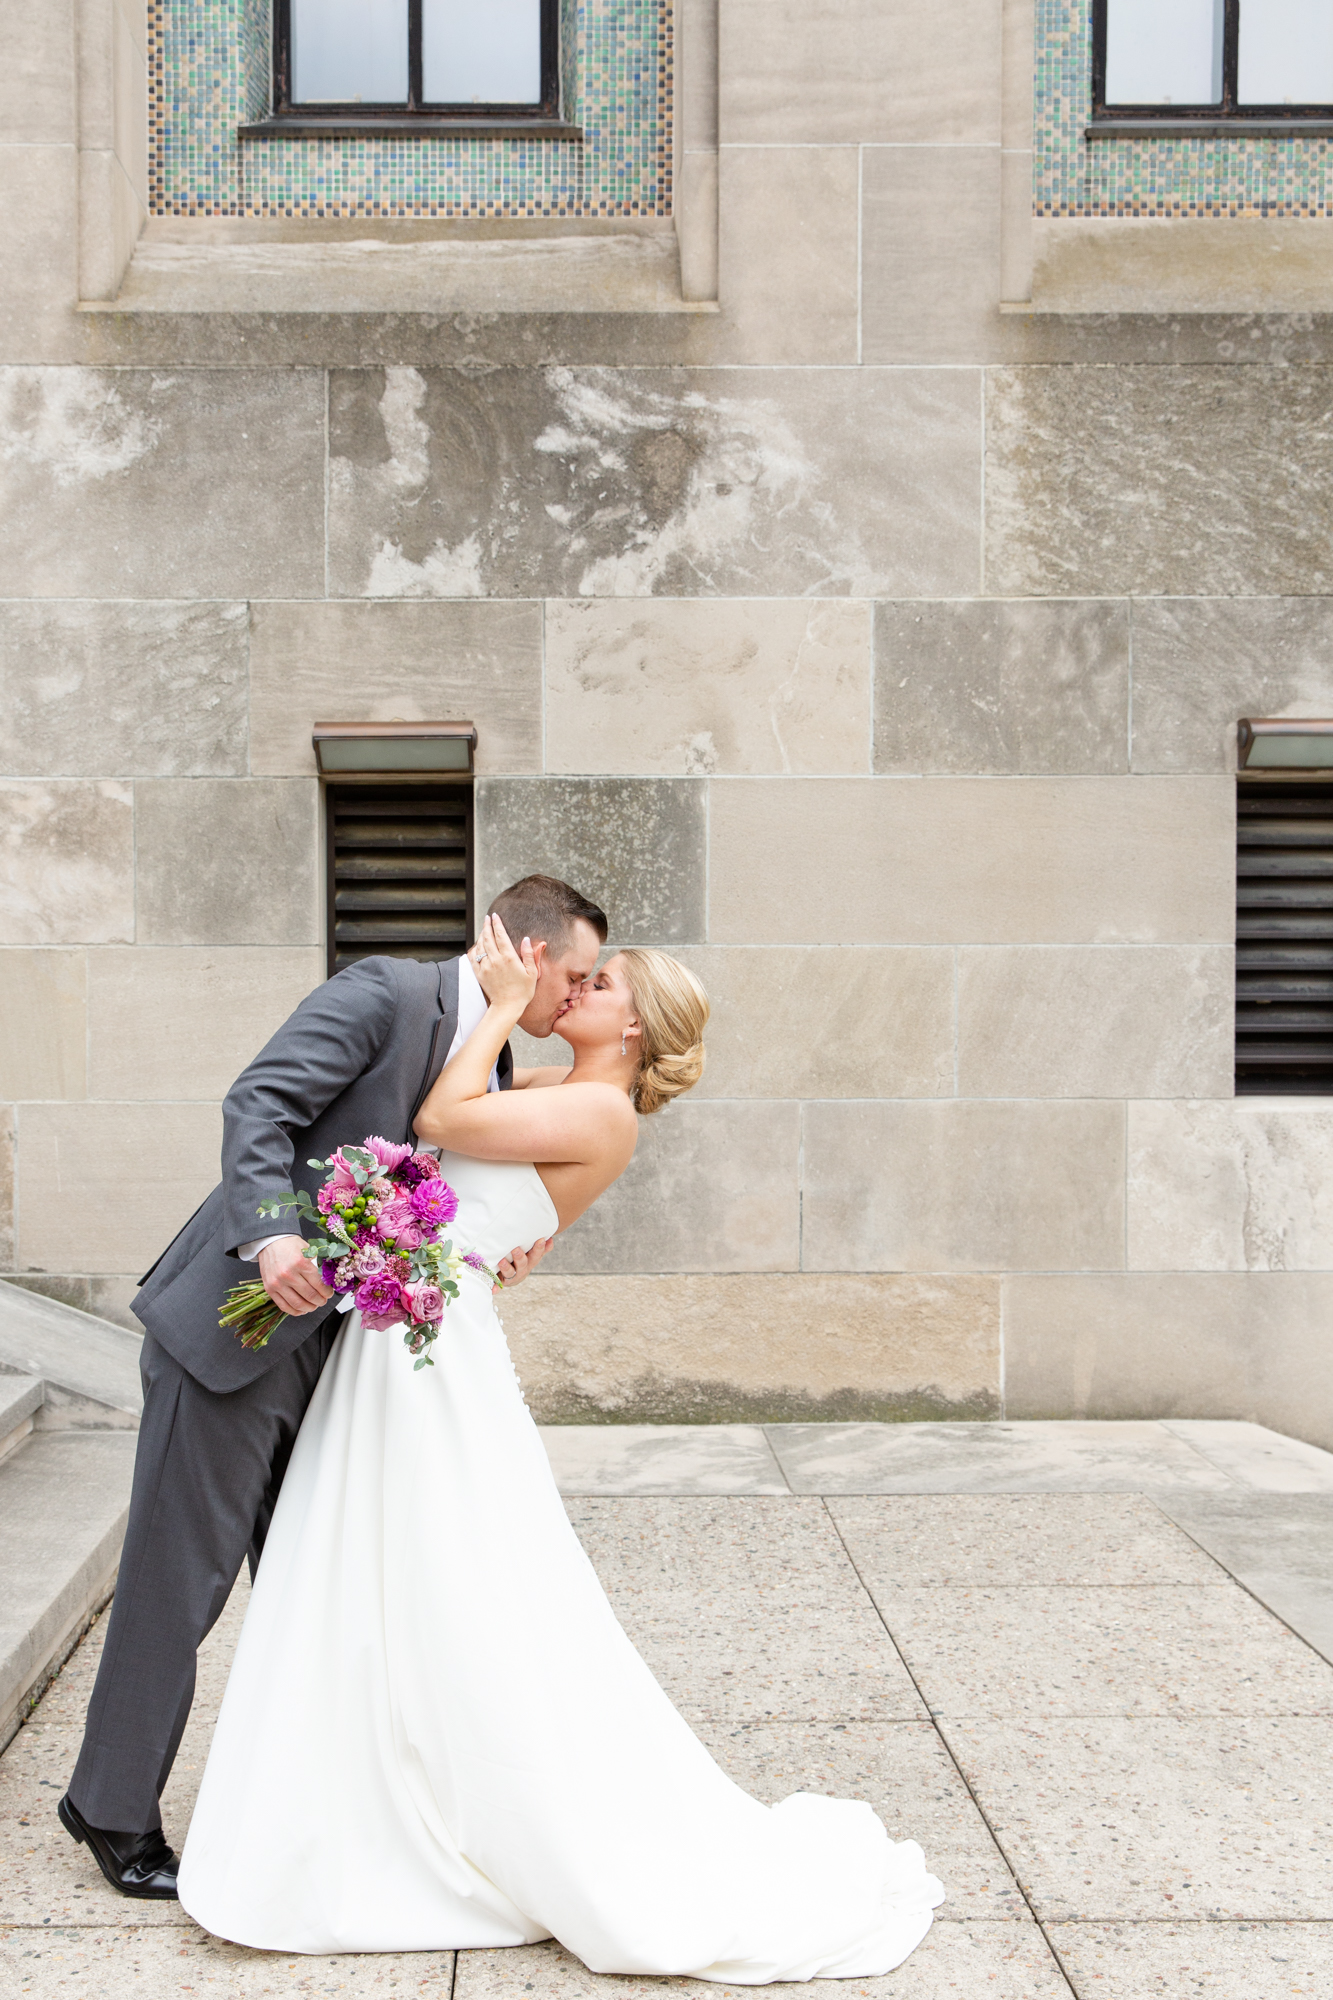 Learn more about Bailey Pianalto Photography's approach to capturing your Kansas City or destination wedding day perfectly.